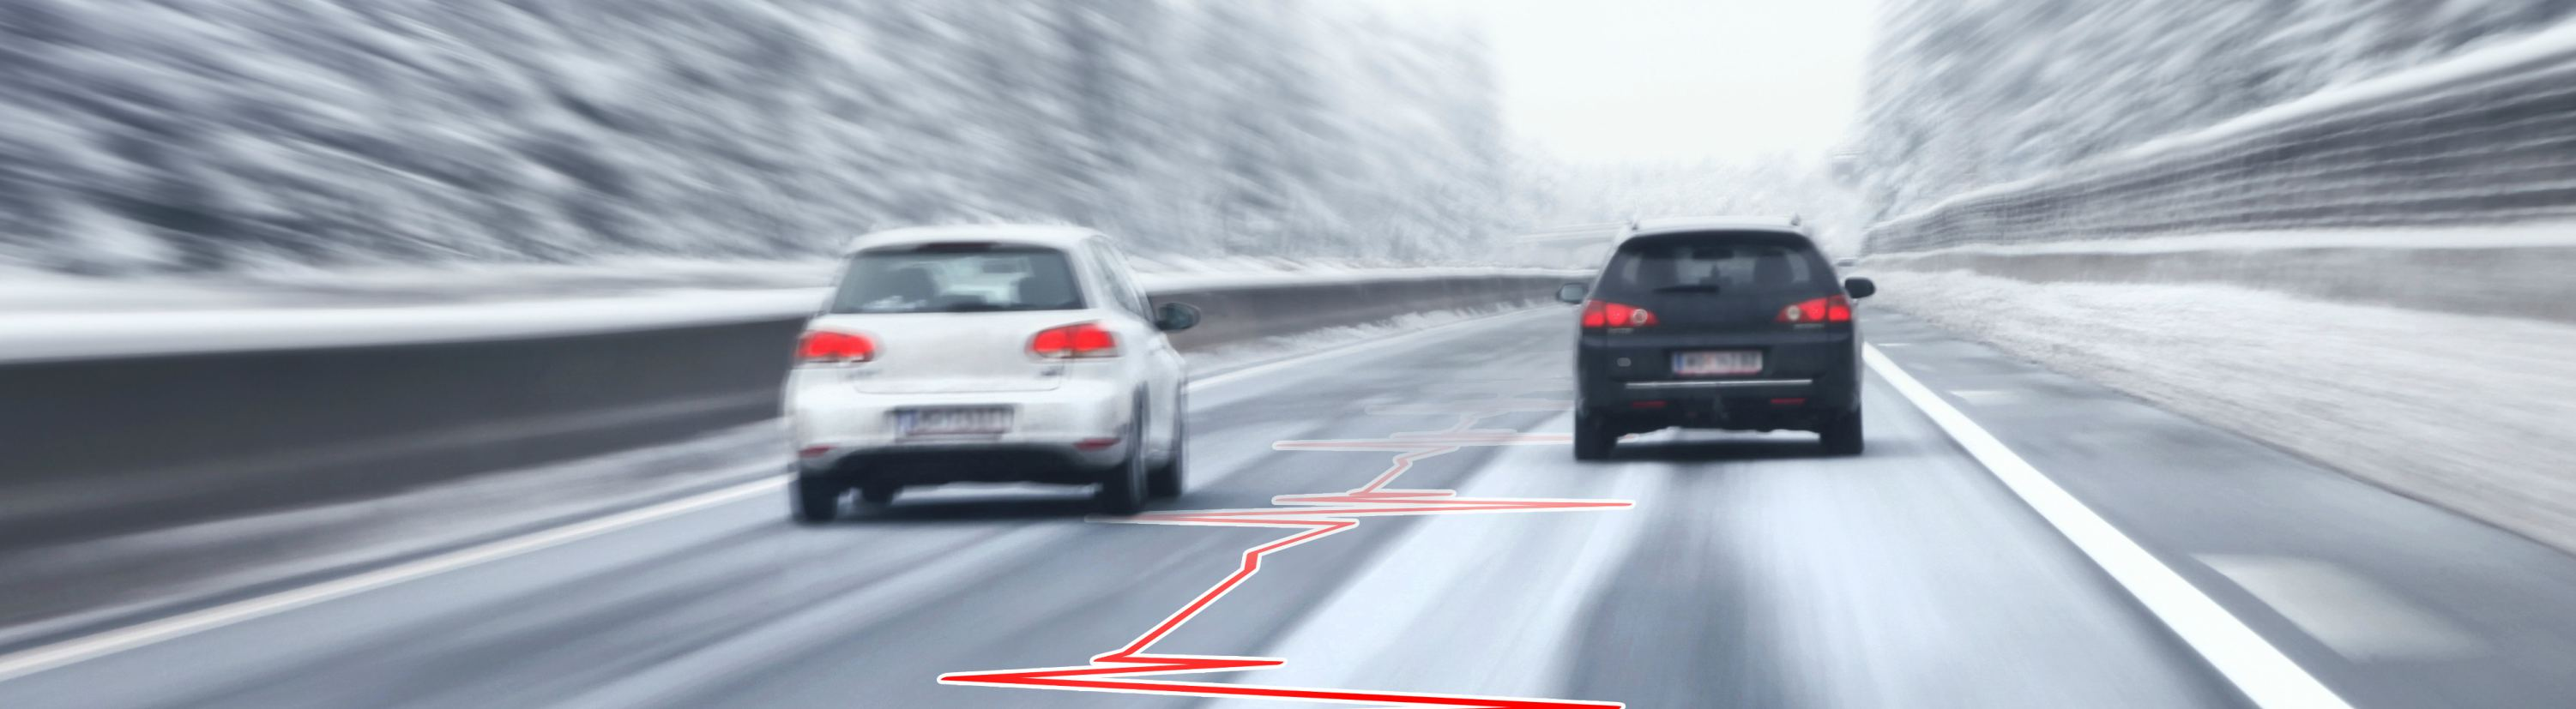 How to overtake the car 90